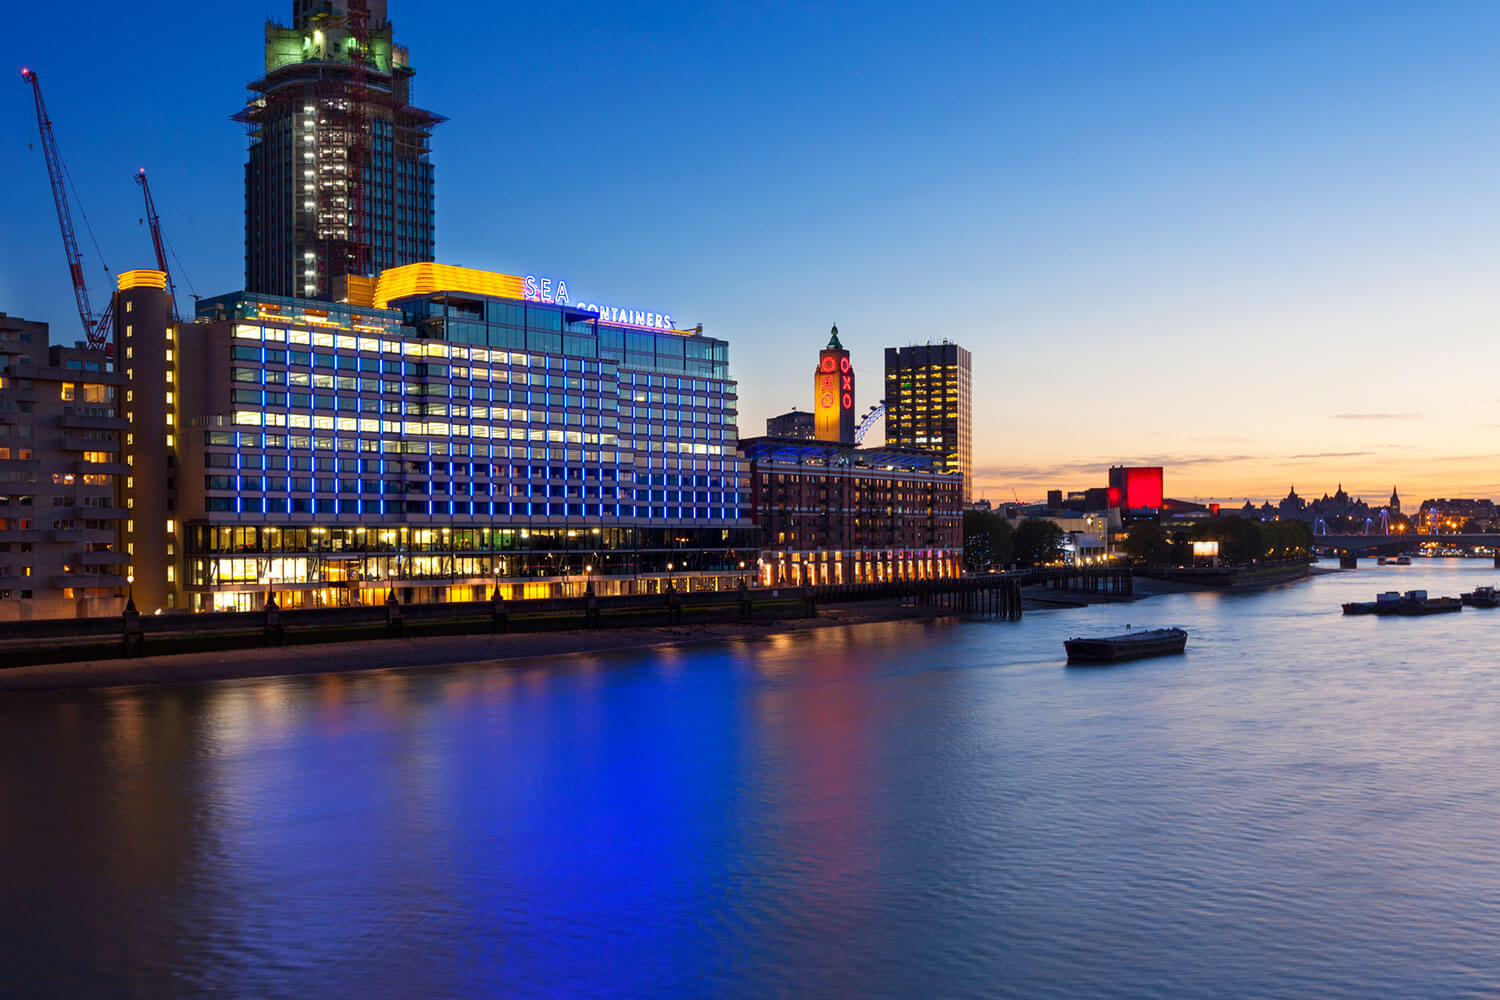 sea-containers-house-south-bank-london-3-mjlighting